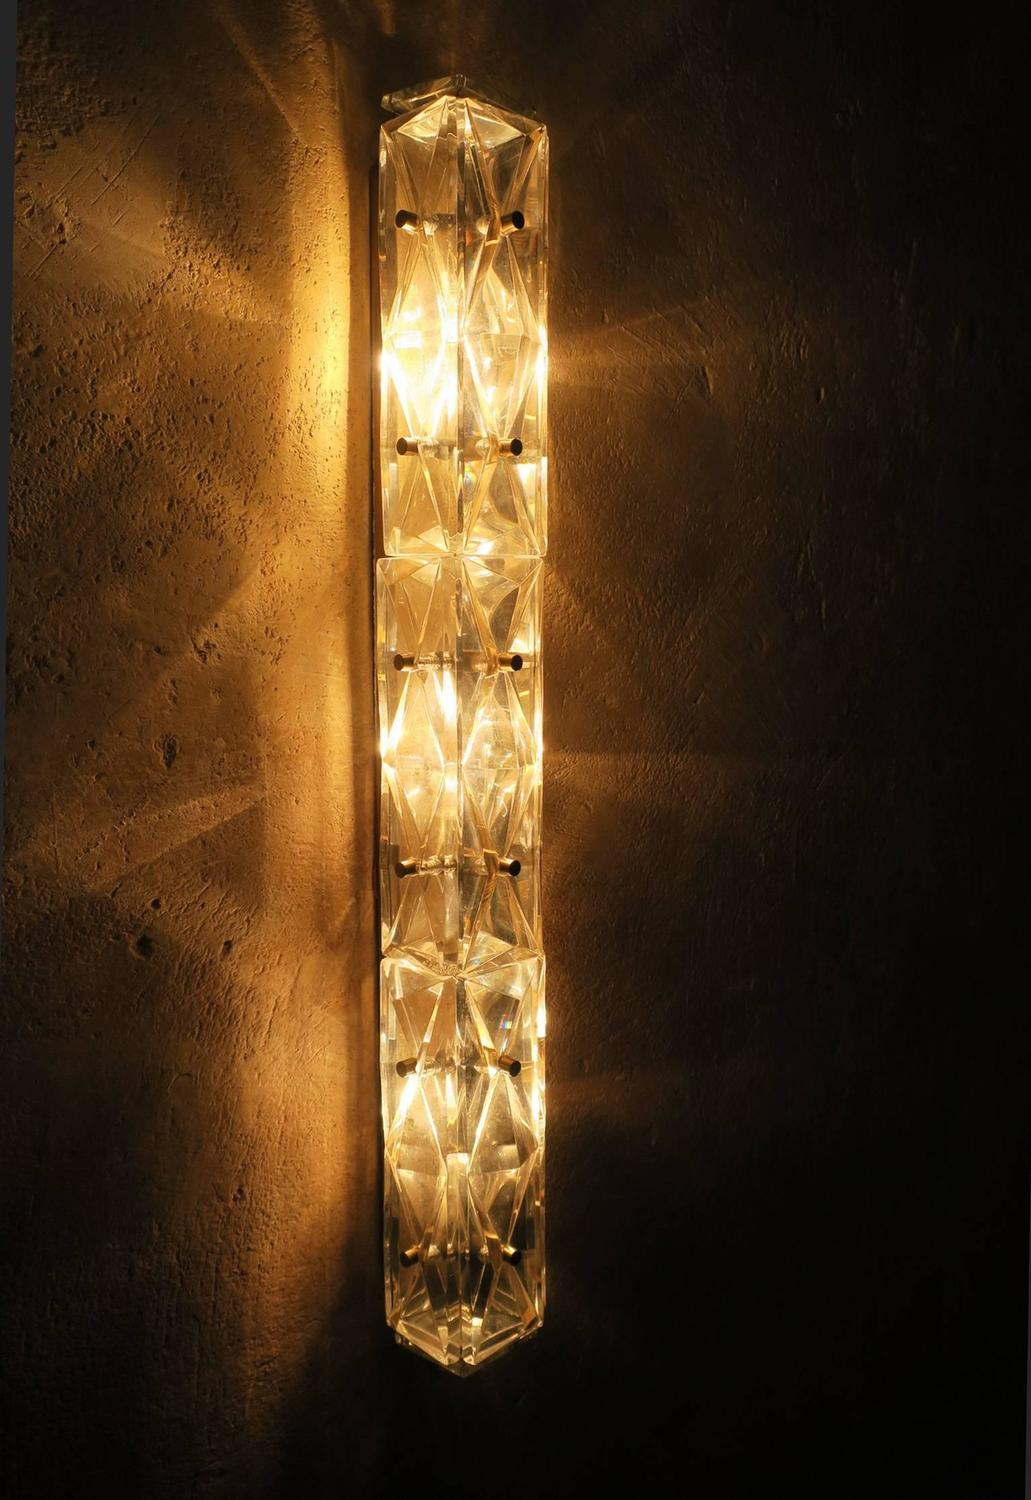 Cut Glass Wall Lights : Faceted Cut Glass and Brass Wall Light or Sconce For Sale at 1stdibs